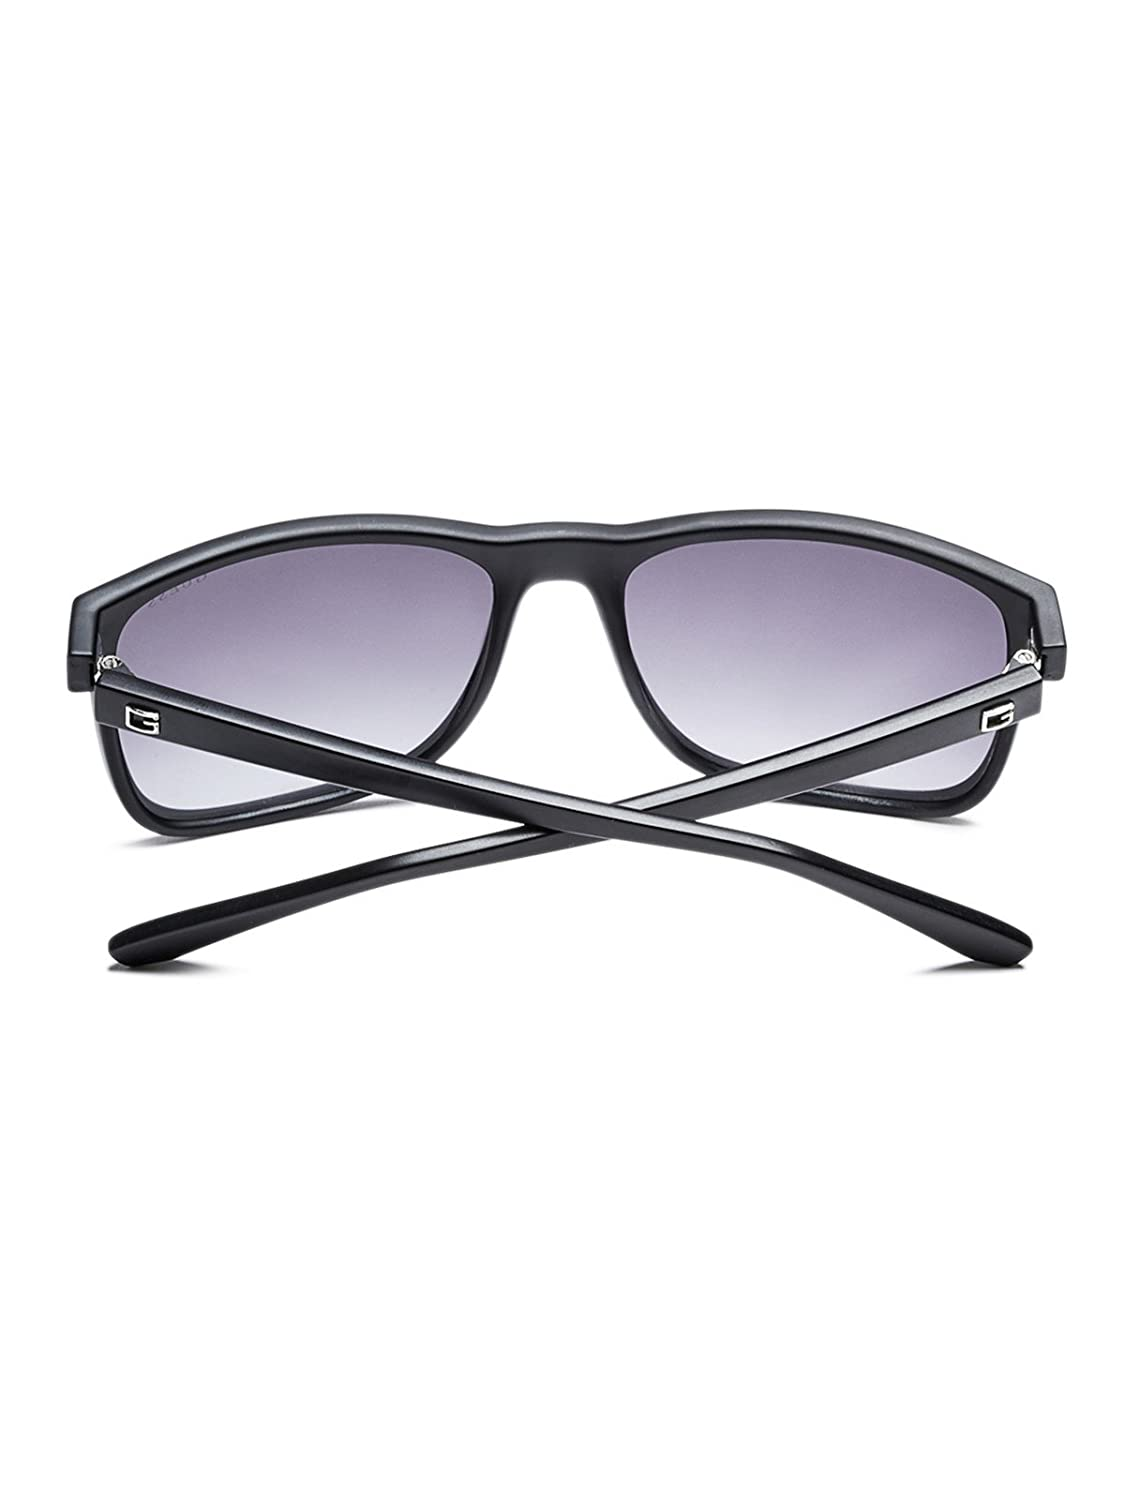 GUESS Factory Mens Matte Plastic Square Sunglasses